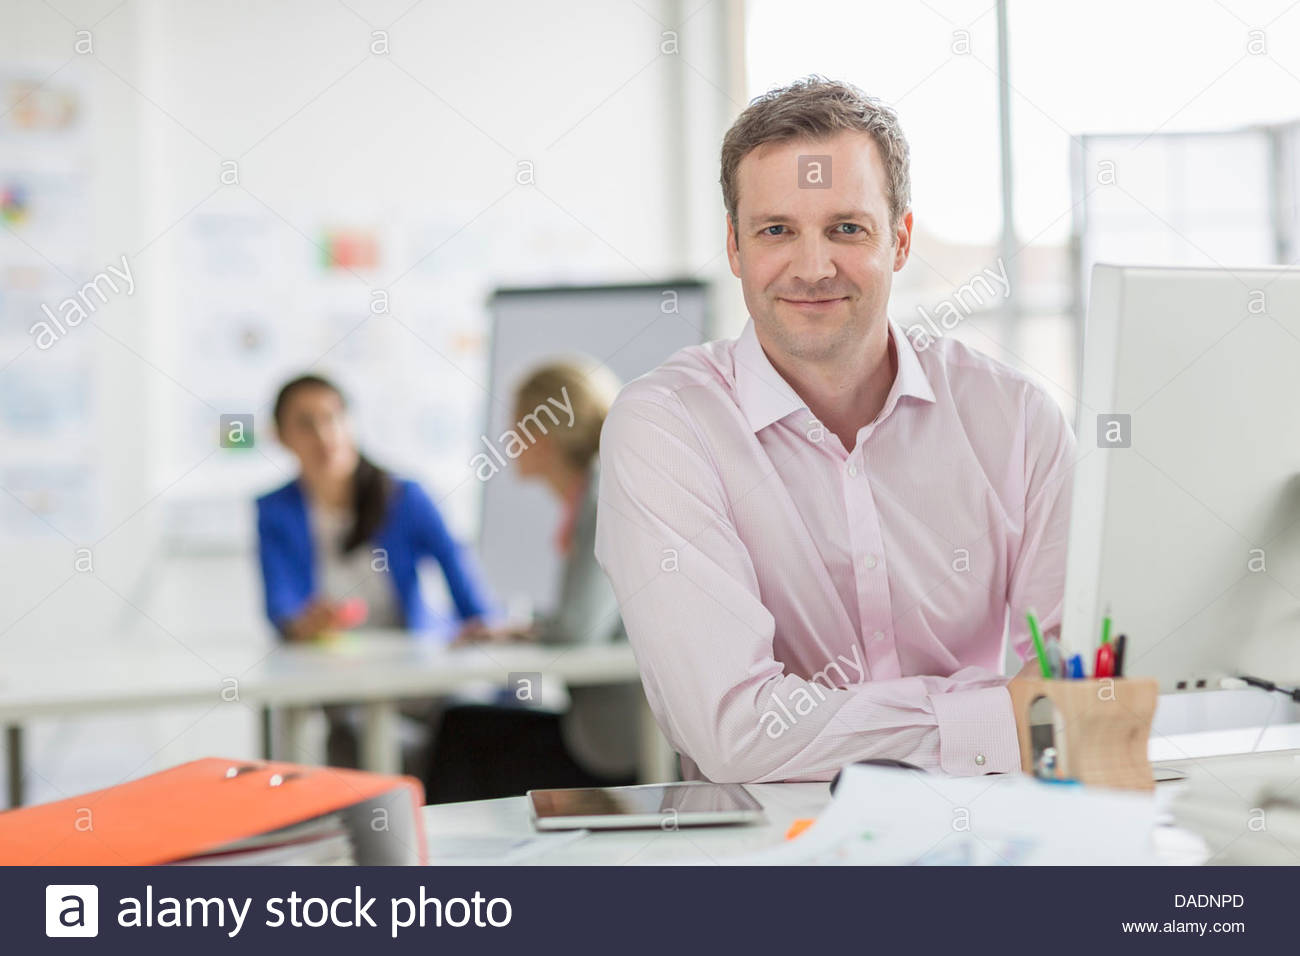 Mature businessman working at desk in office, portrait - Stock Image